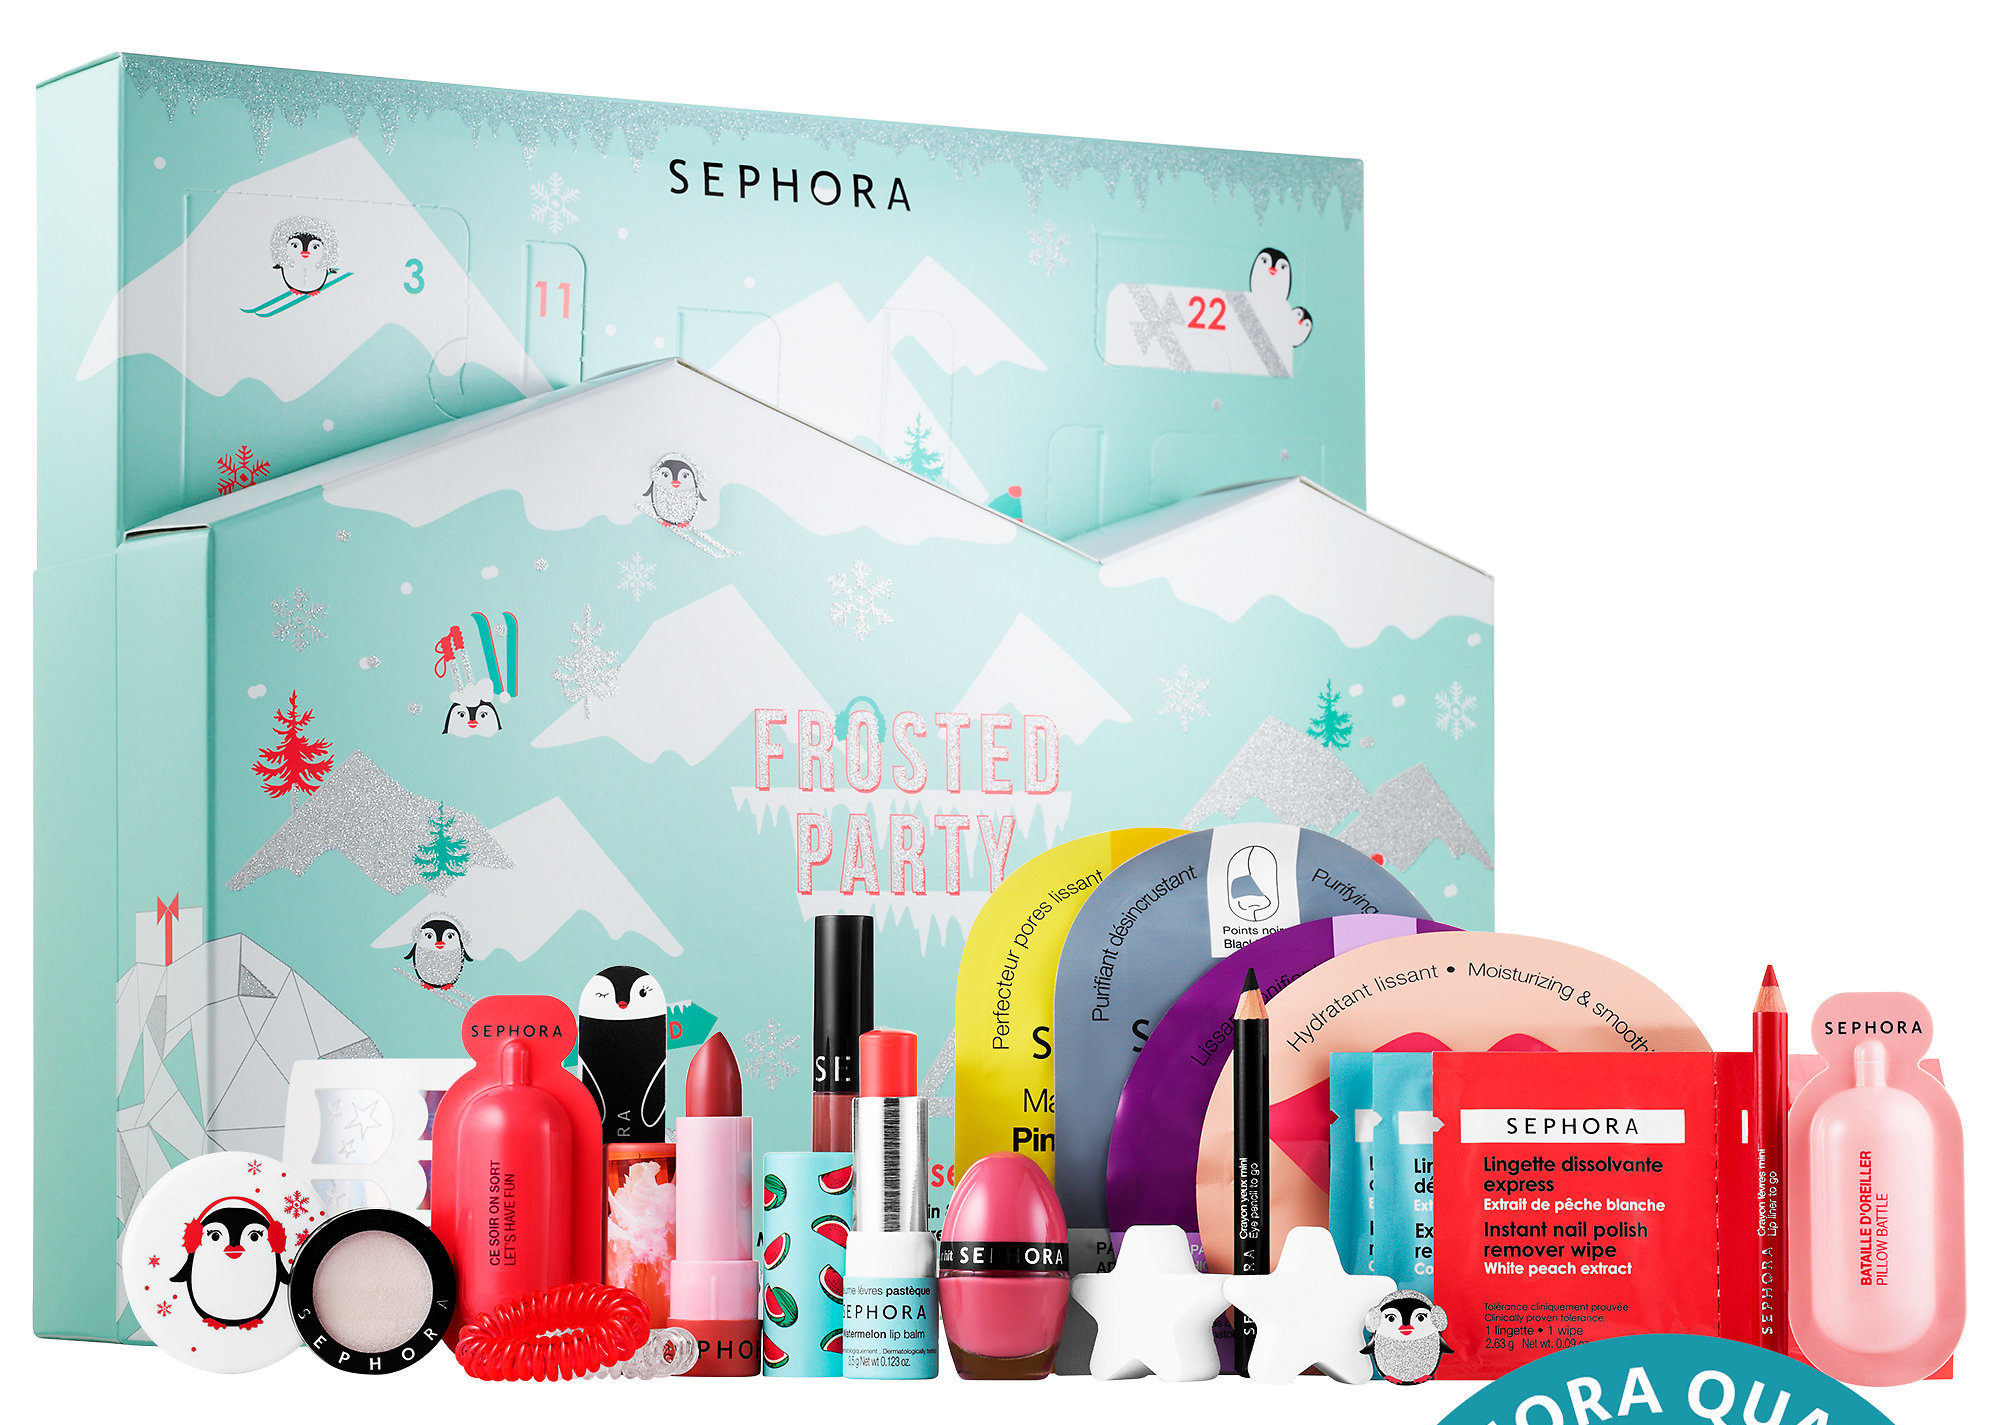 Calendario de Adviento 2019 de Sephora Frosted Party Adven Calendar 2019 Sephora